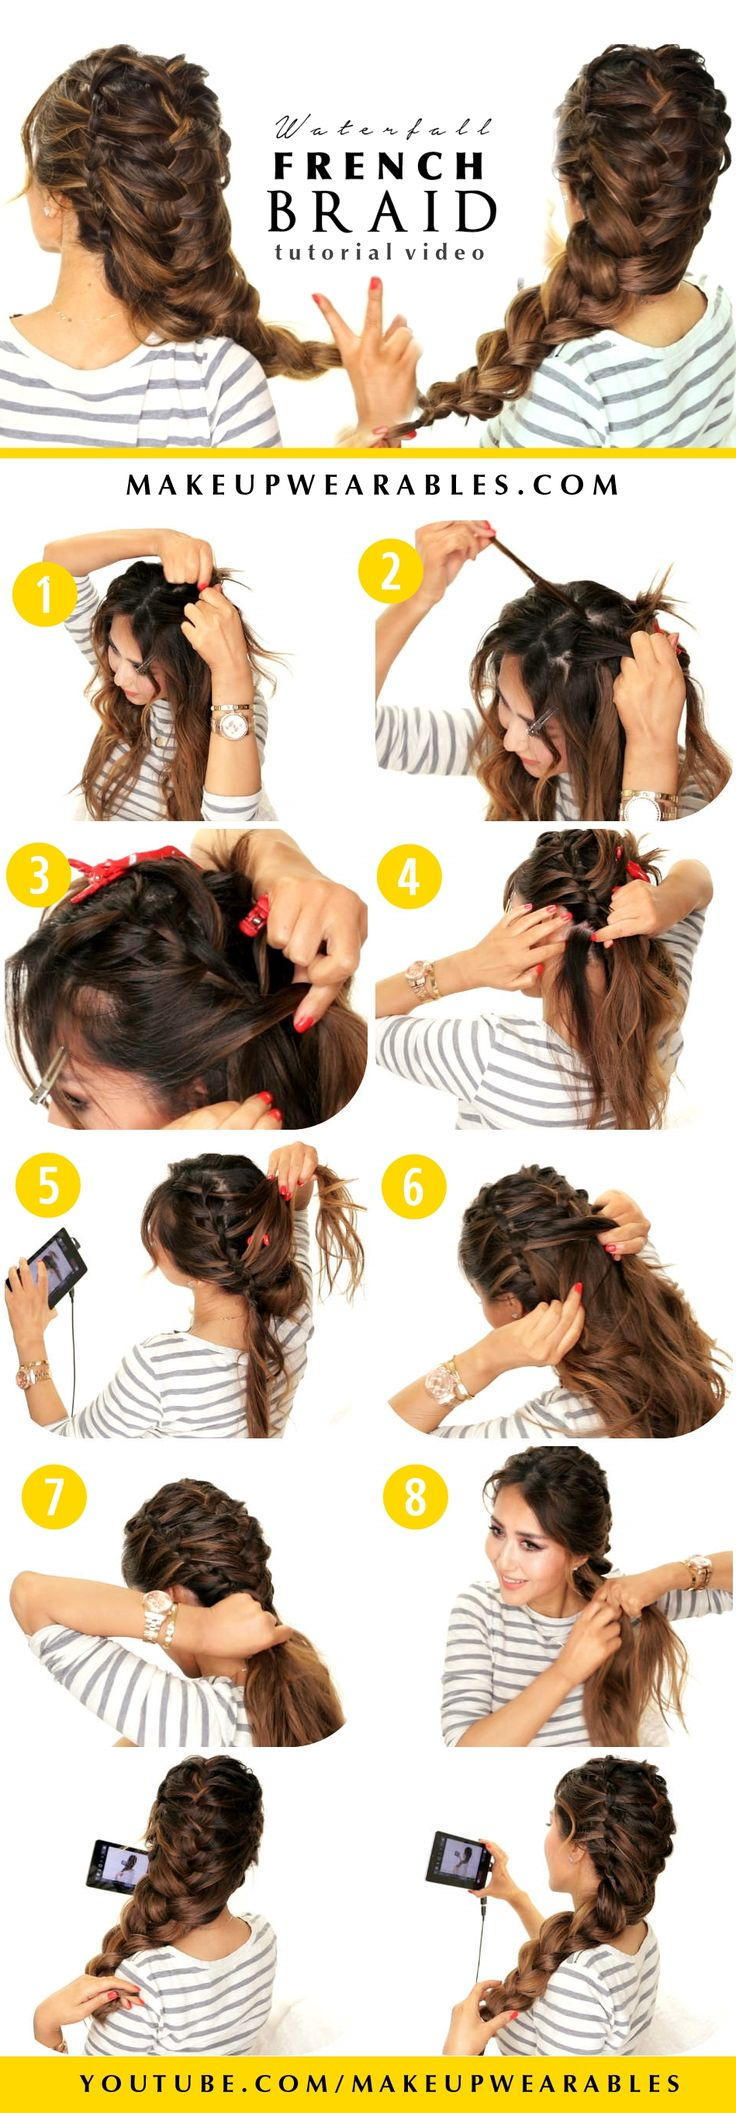 Cute Waterfall Braid mixed French Braid Hair Tutorial | Braided Hairstyles for everyday & wedding | #Hairstyles #updo #updos #teen #teenager #style #fashion #beauty #Peinados #wedding #romantic #pretty #beautiful #styles #look #braids